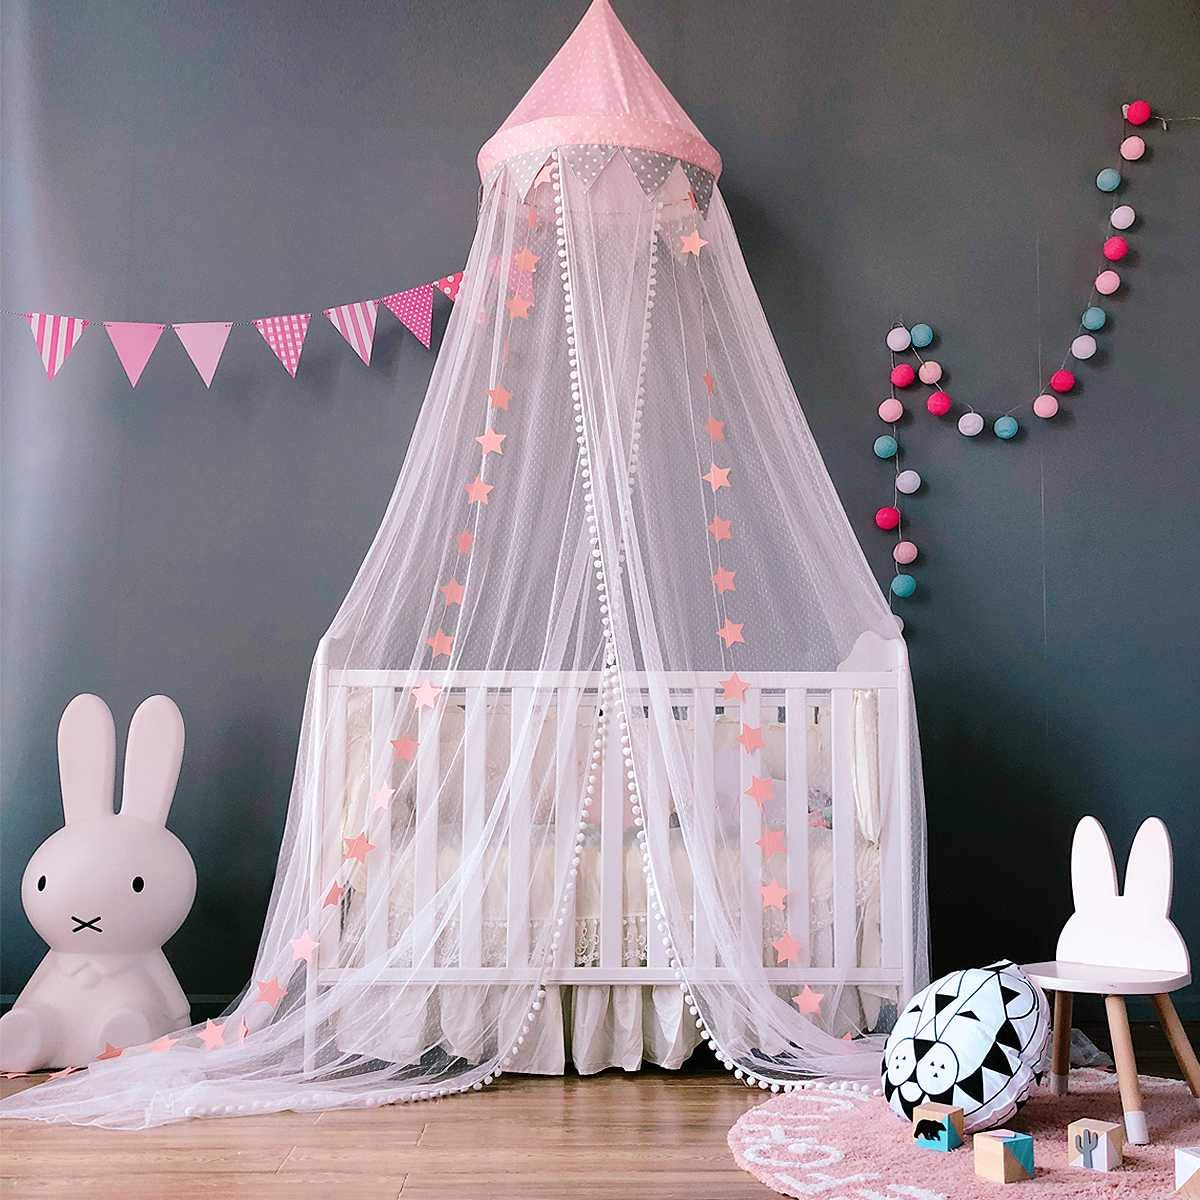 Dix-Rainbow Bed Canopy Mosquito Net Baby Crib Kids Twin Full Queen Size Bed, Reading Nook for Girls and Boys, Princess Lace Round Dome Fairy Netting Curtains, Kids Play Tent Castle Games House - Pink by Dix-Rainbow (Image #1)